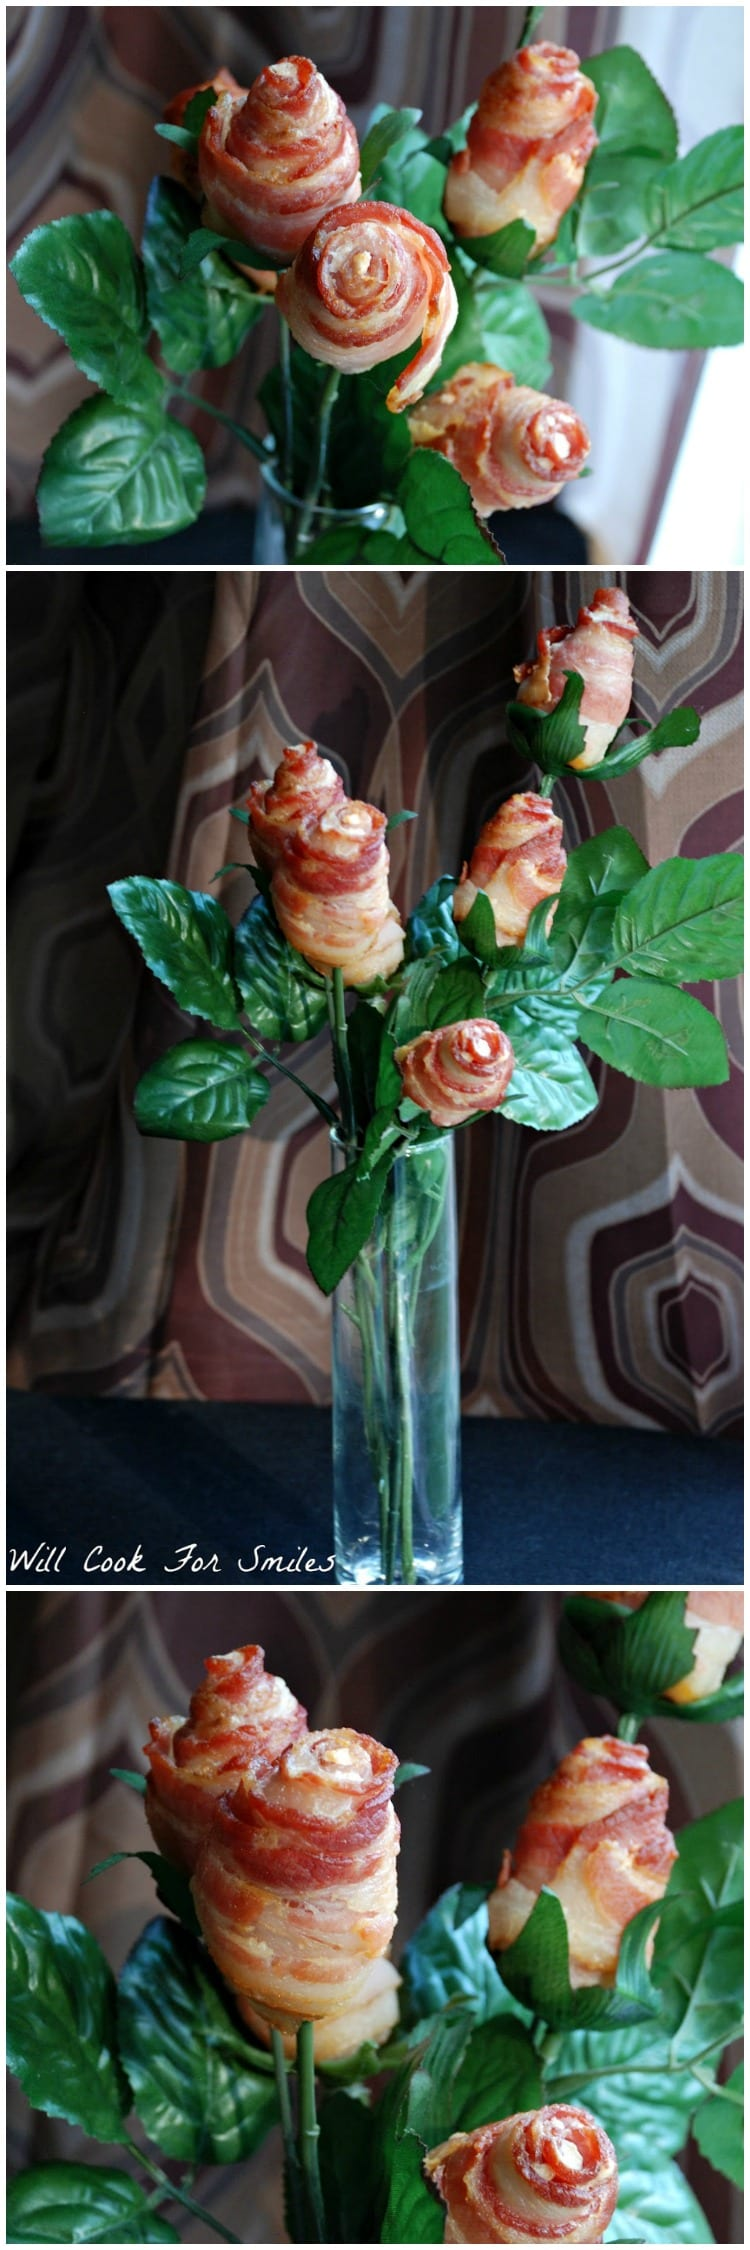 Bacon flower bouquet will cook for smiles bacon flower bouquet the ultimate flowers for your guy izmirmasajfo